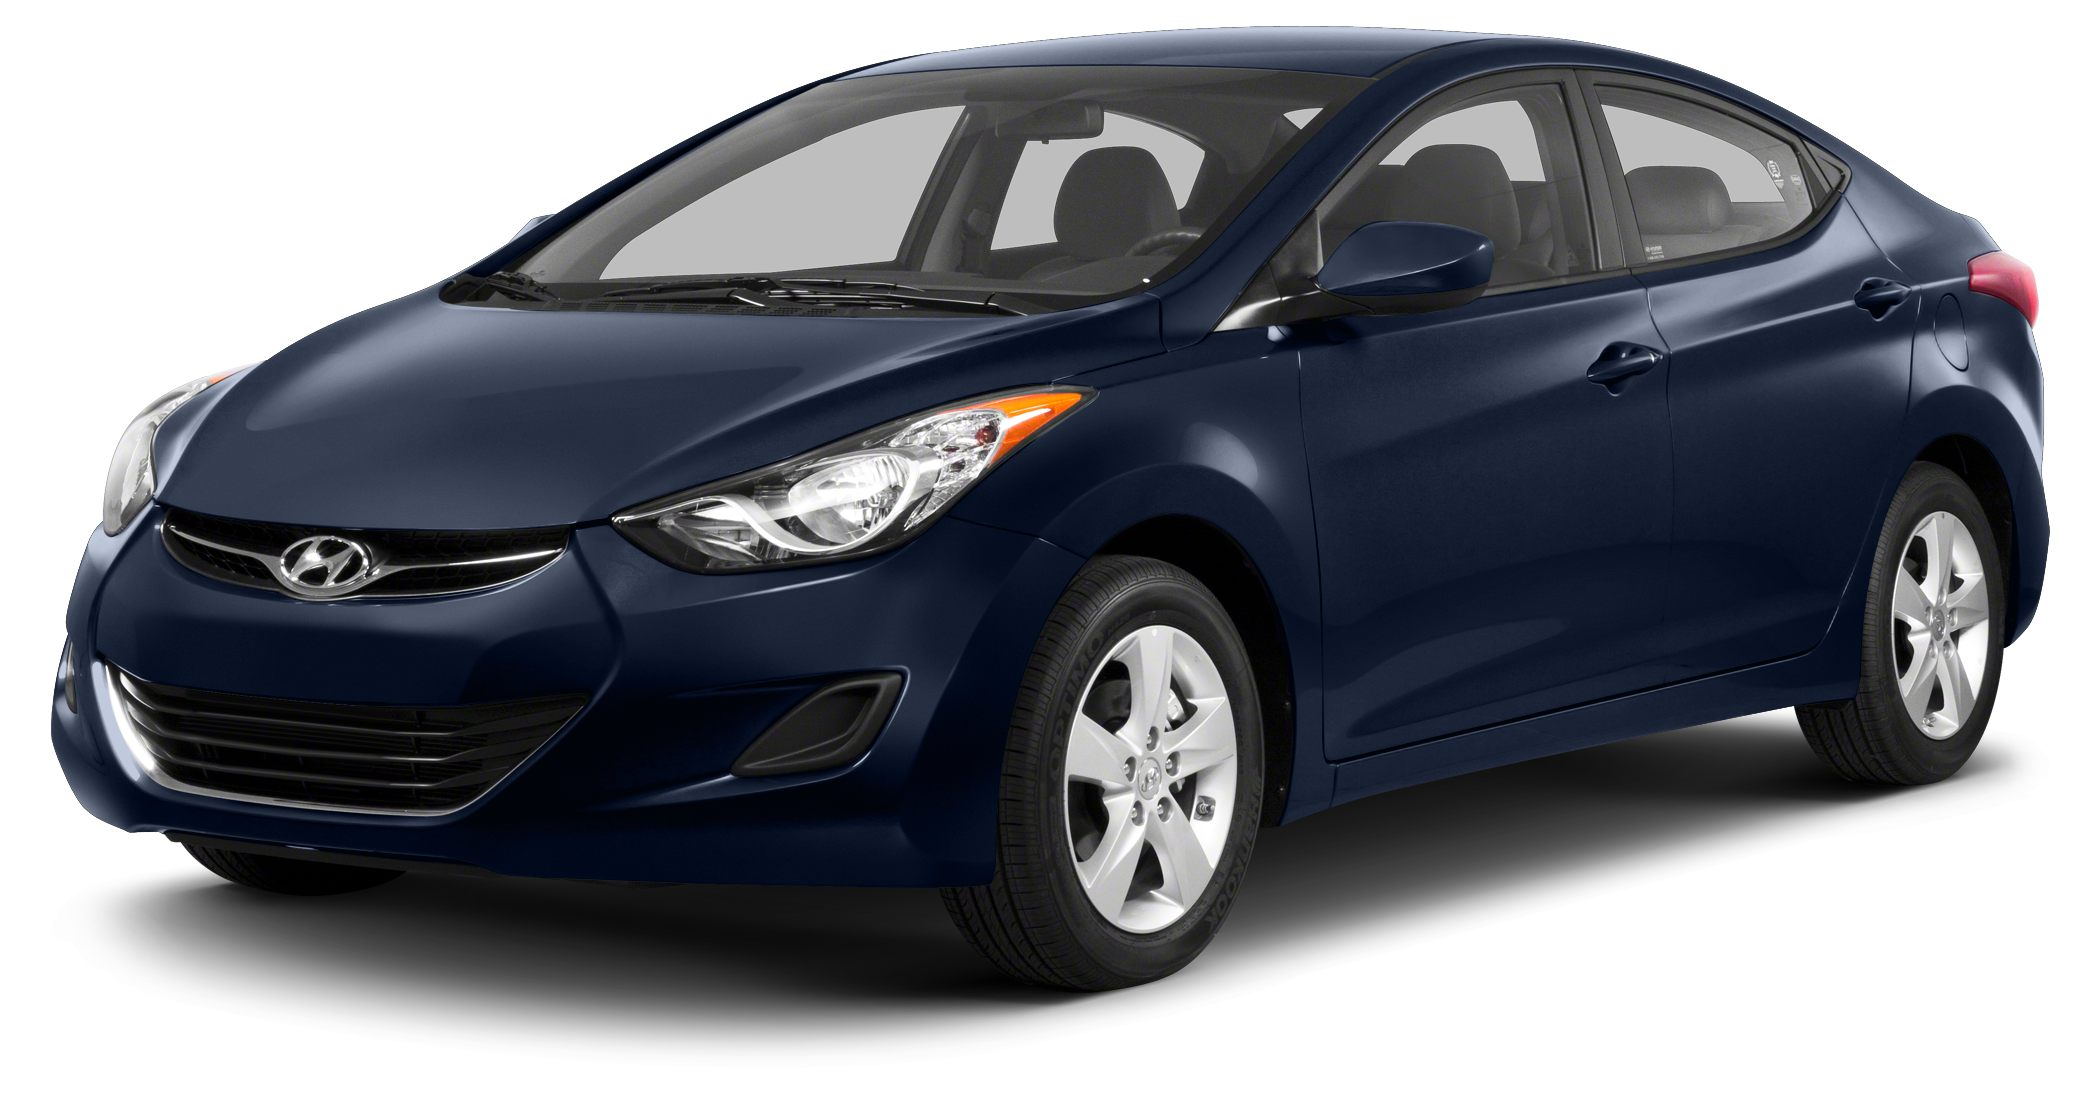 2013 Hyundai Elantra Limited OUR PRICESYoure probably wondering why our prices are so much lower